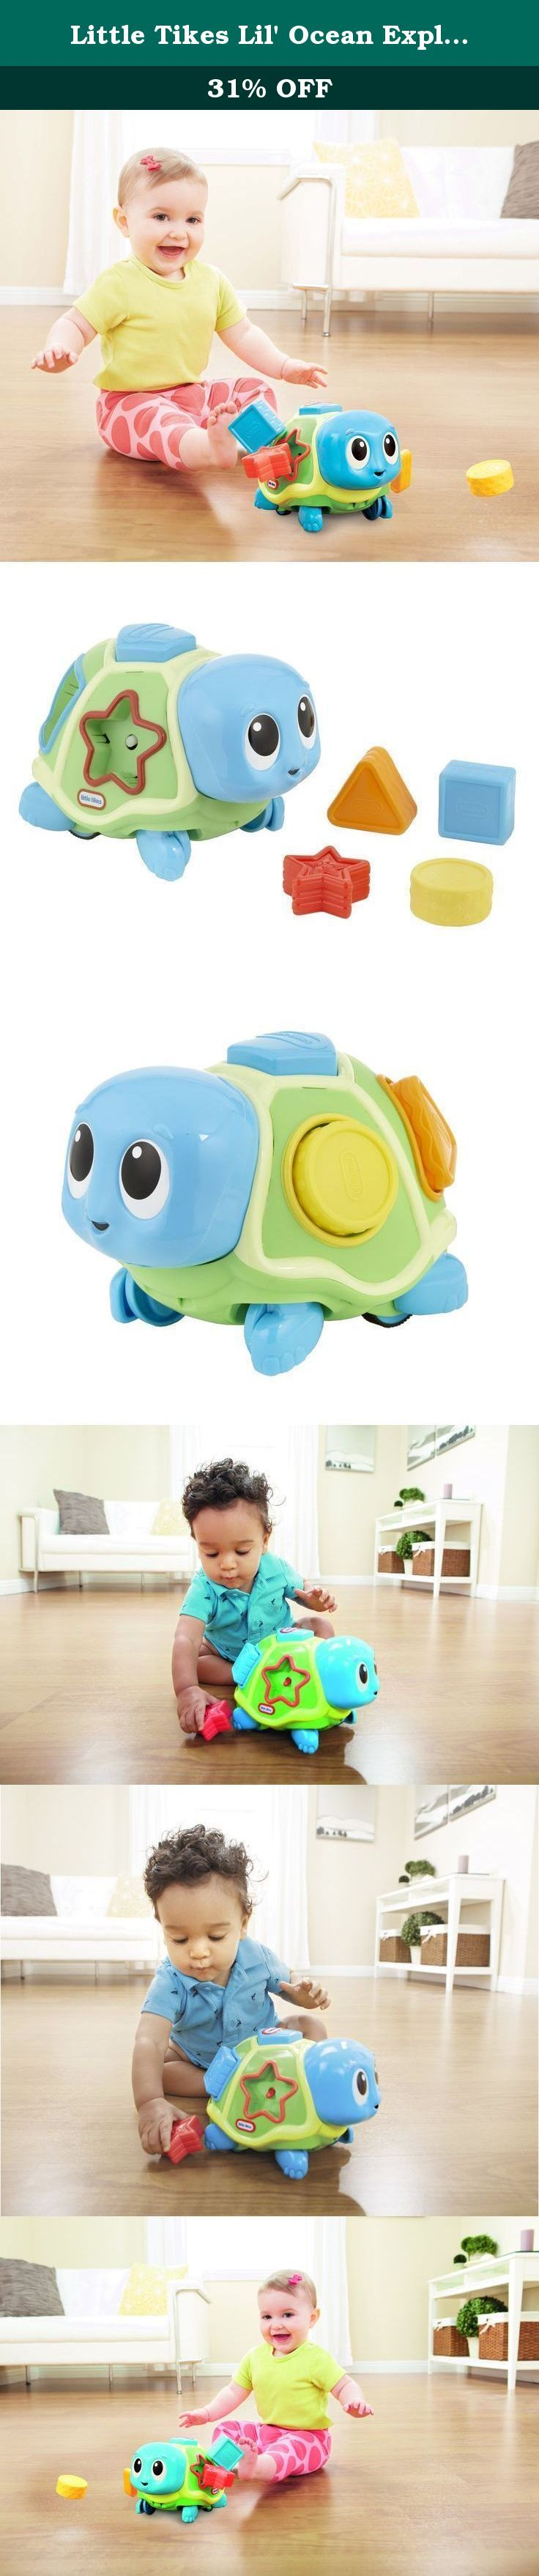 Little Tikes Lil' Ocean Explorers - Crawl 'n Pop! Turtle. A turtle twist on shape sorting! Your baby will learn about shapes and colors by placing the plastic shapes into the turtle's shell. When baby is ready to crawl, the Crawl 'n Pop! Turtle will lead the way, zigzagging along with lively music. And then, surprise! The shapes pop out of the shell for your baby to play all over again! Product Features: • Shape sorter toy with a topsey-turvy turtle surprise! • Press on turtle's head to…